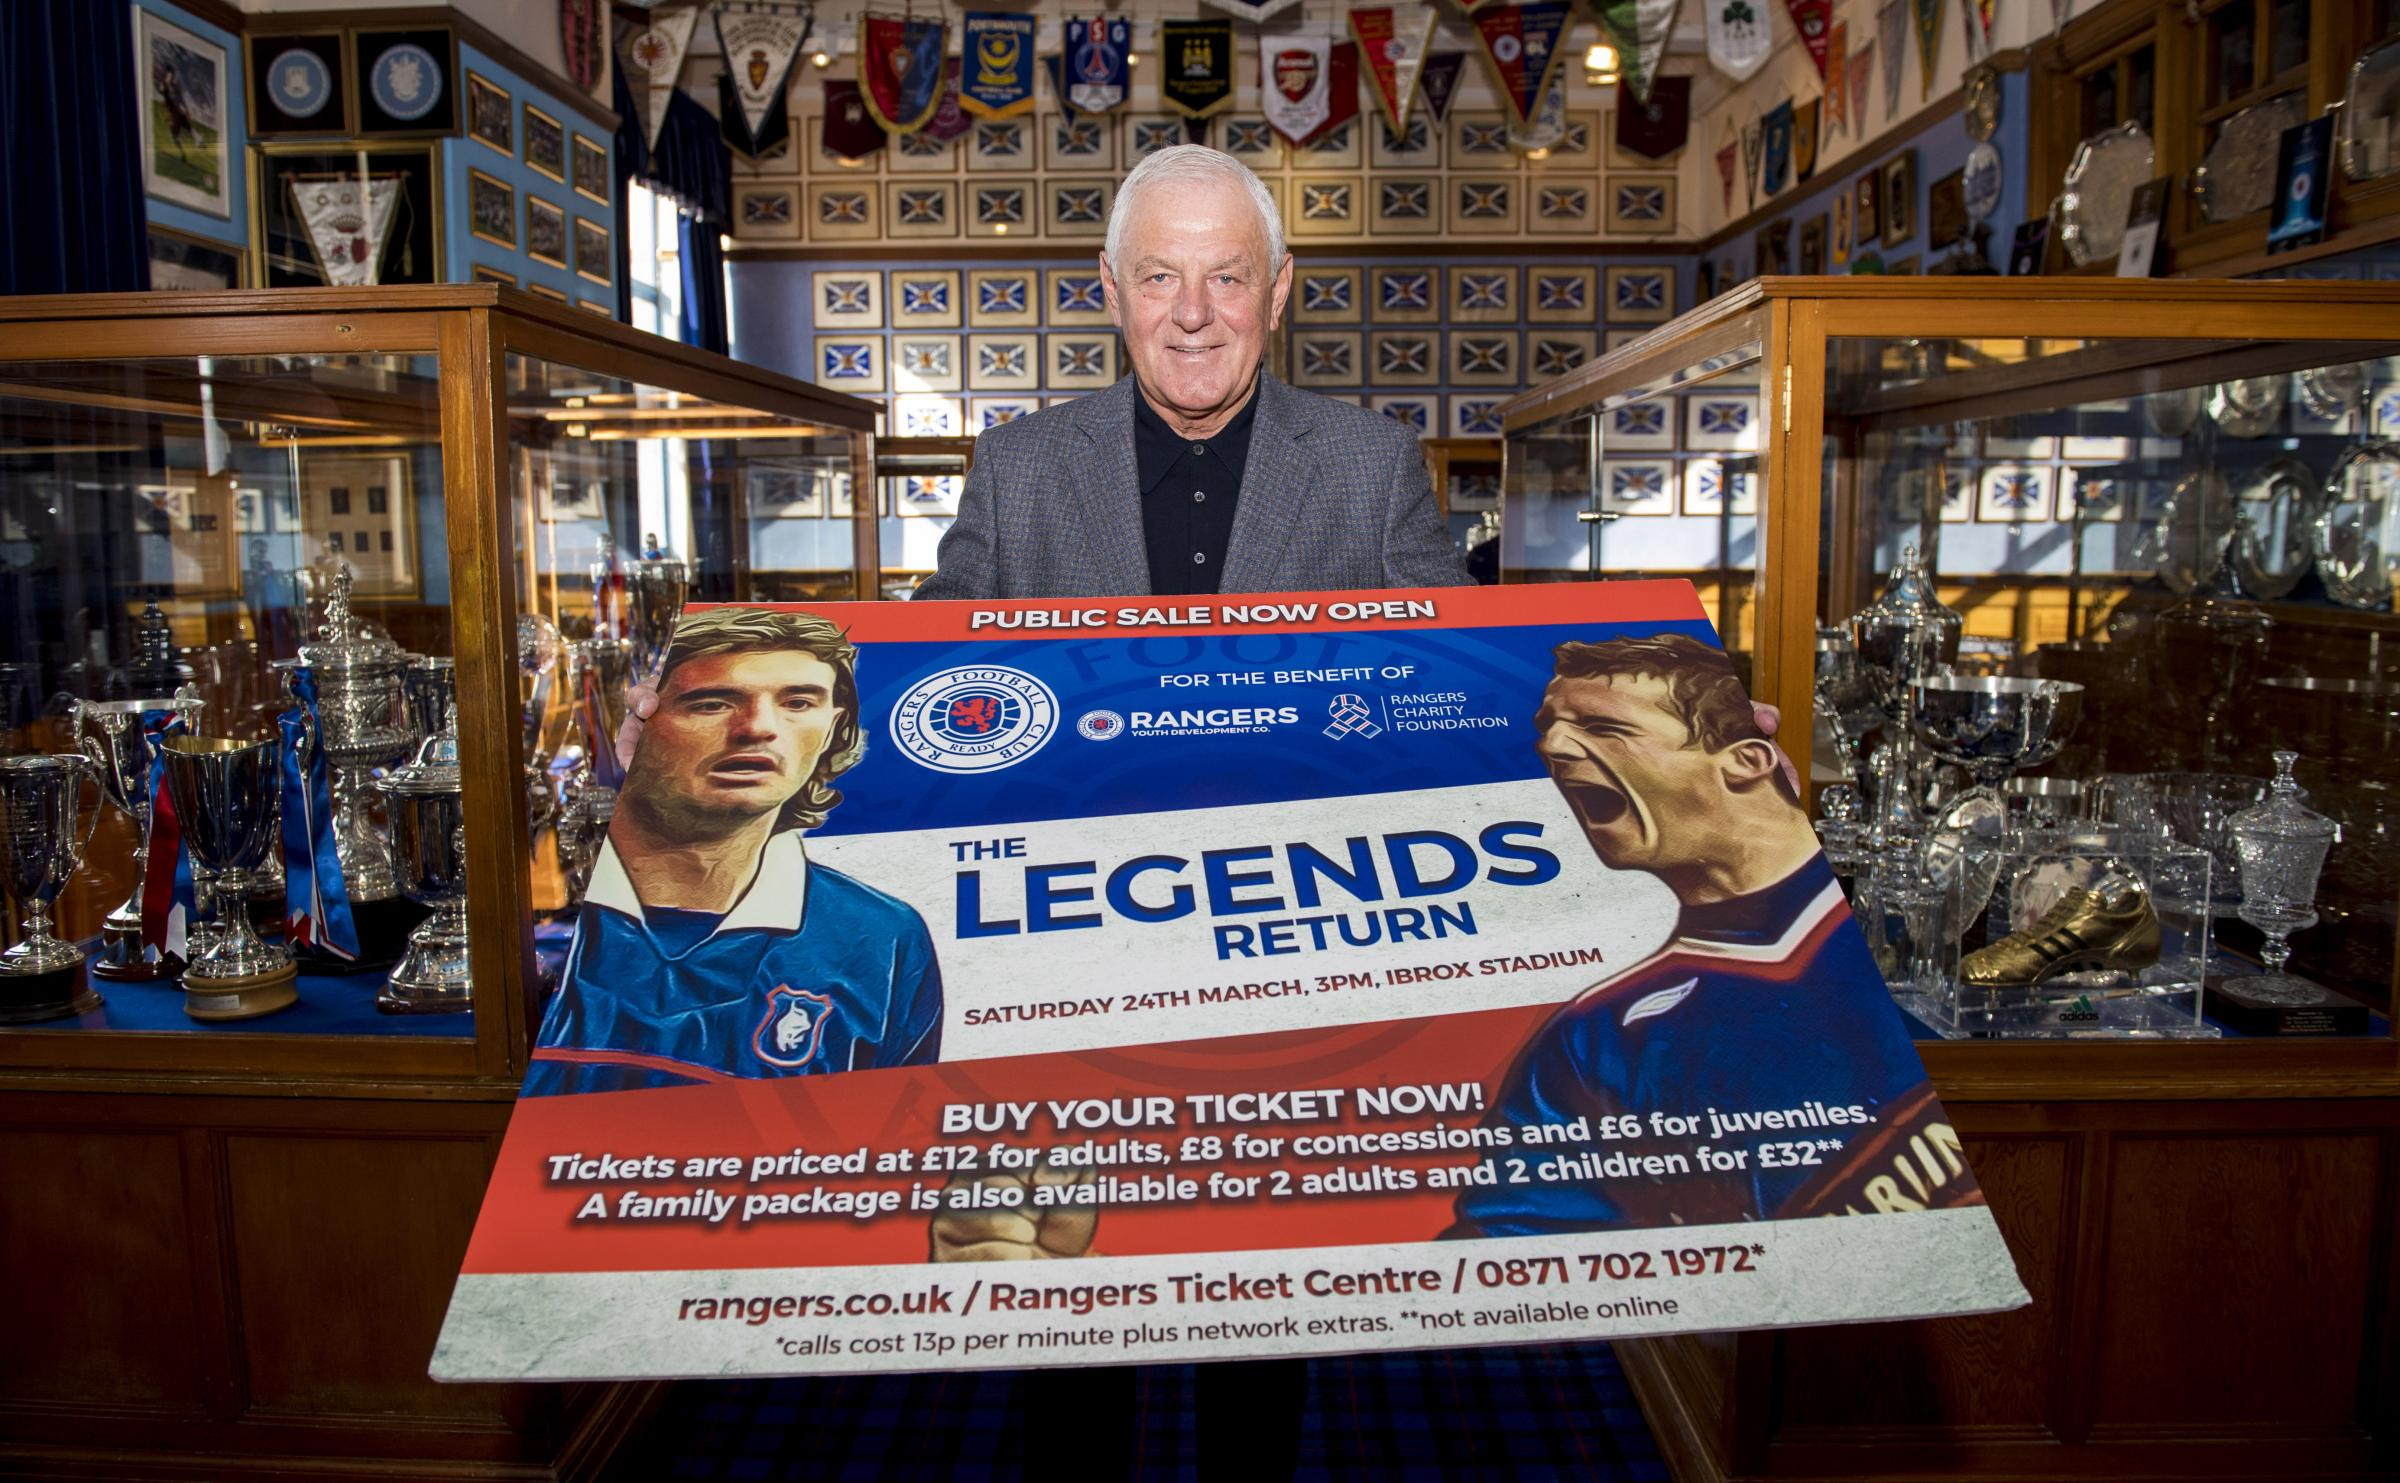 Former Rangers manager Walter Smith promotes the upcoming Rangers Legends game on the 24th of March